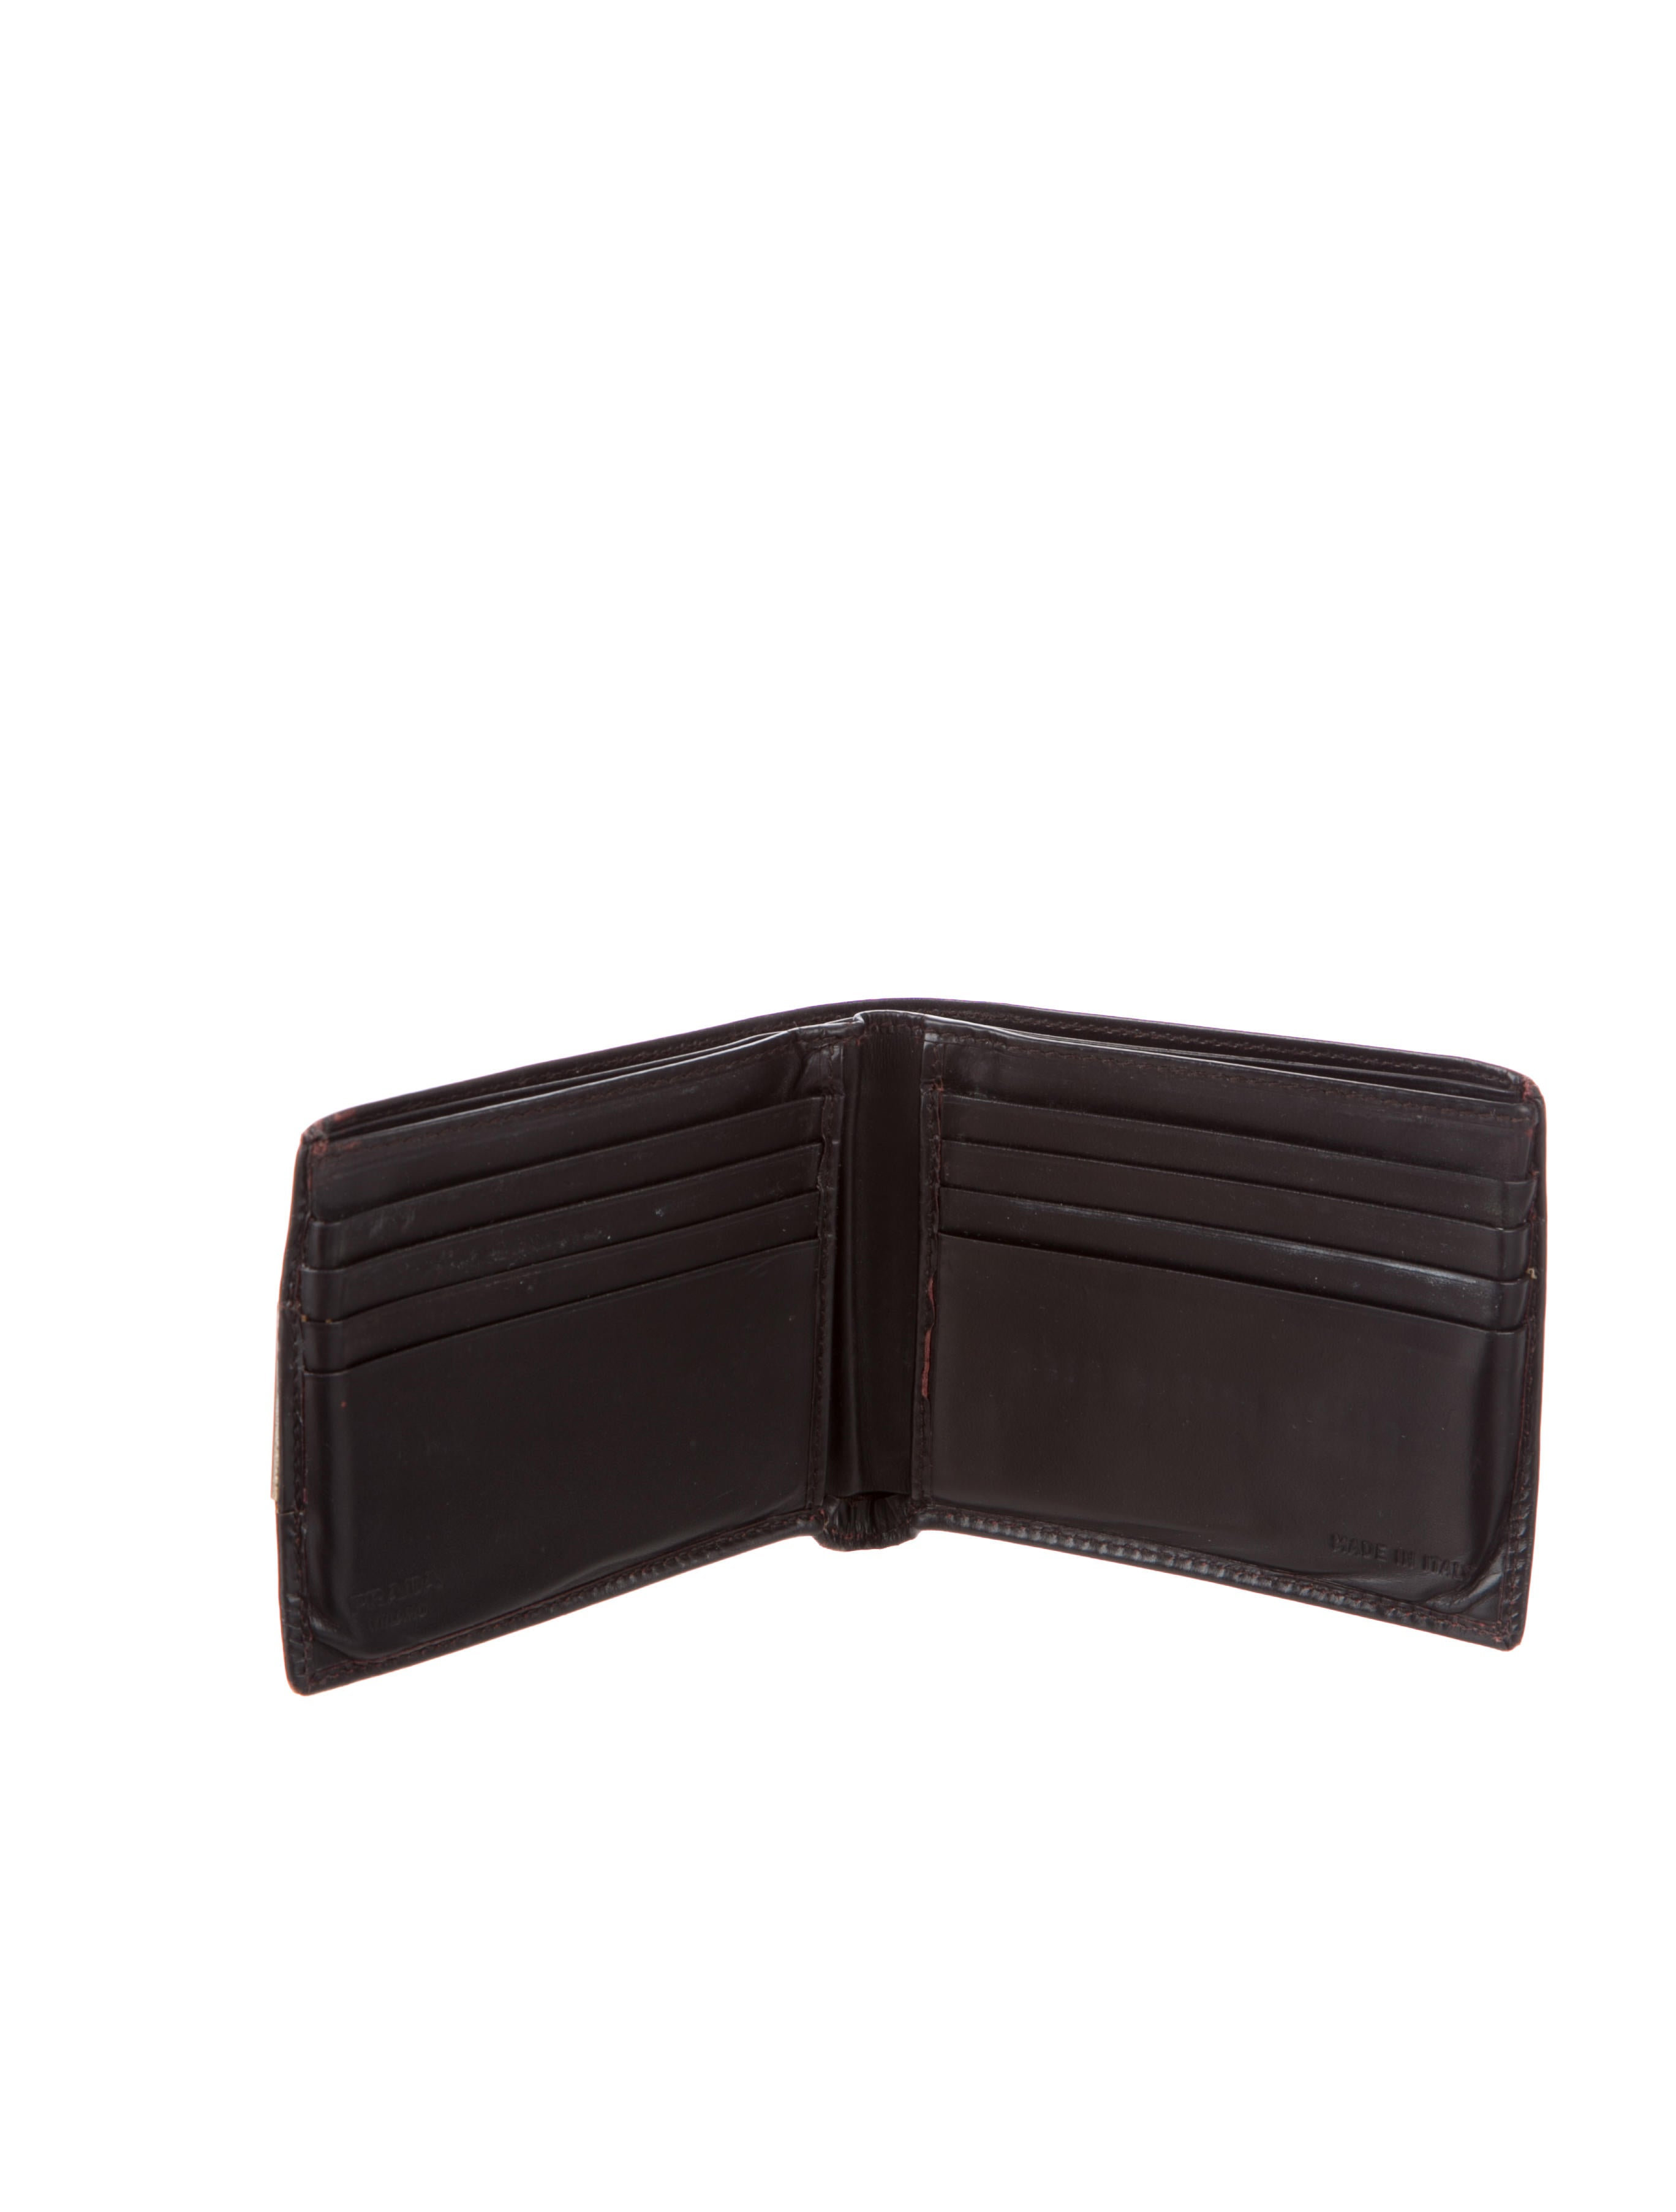 3b05c18b7d63 Prada Bifold Wallet | Stanford Center for Opportunity Policy in ...